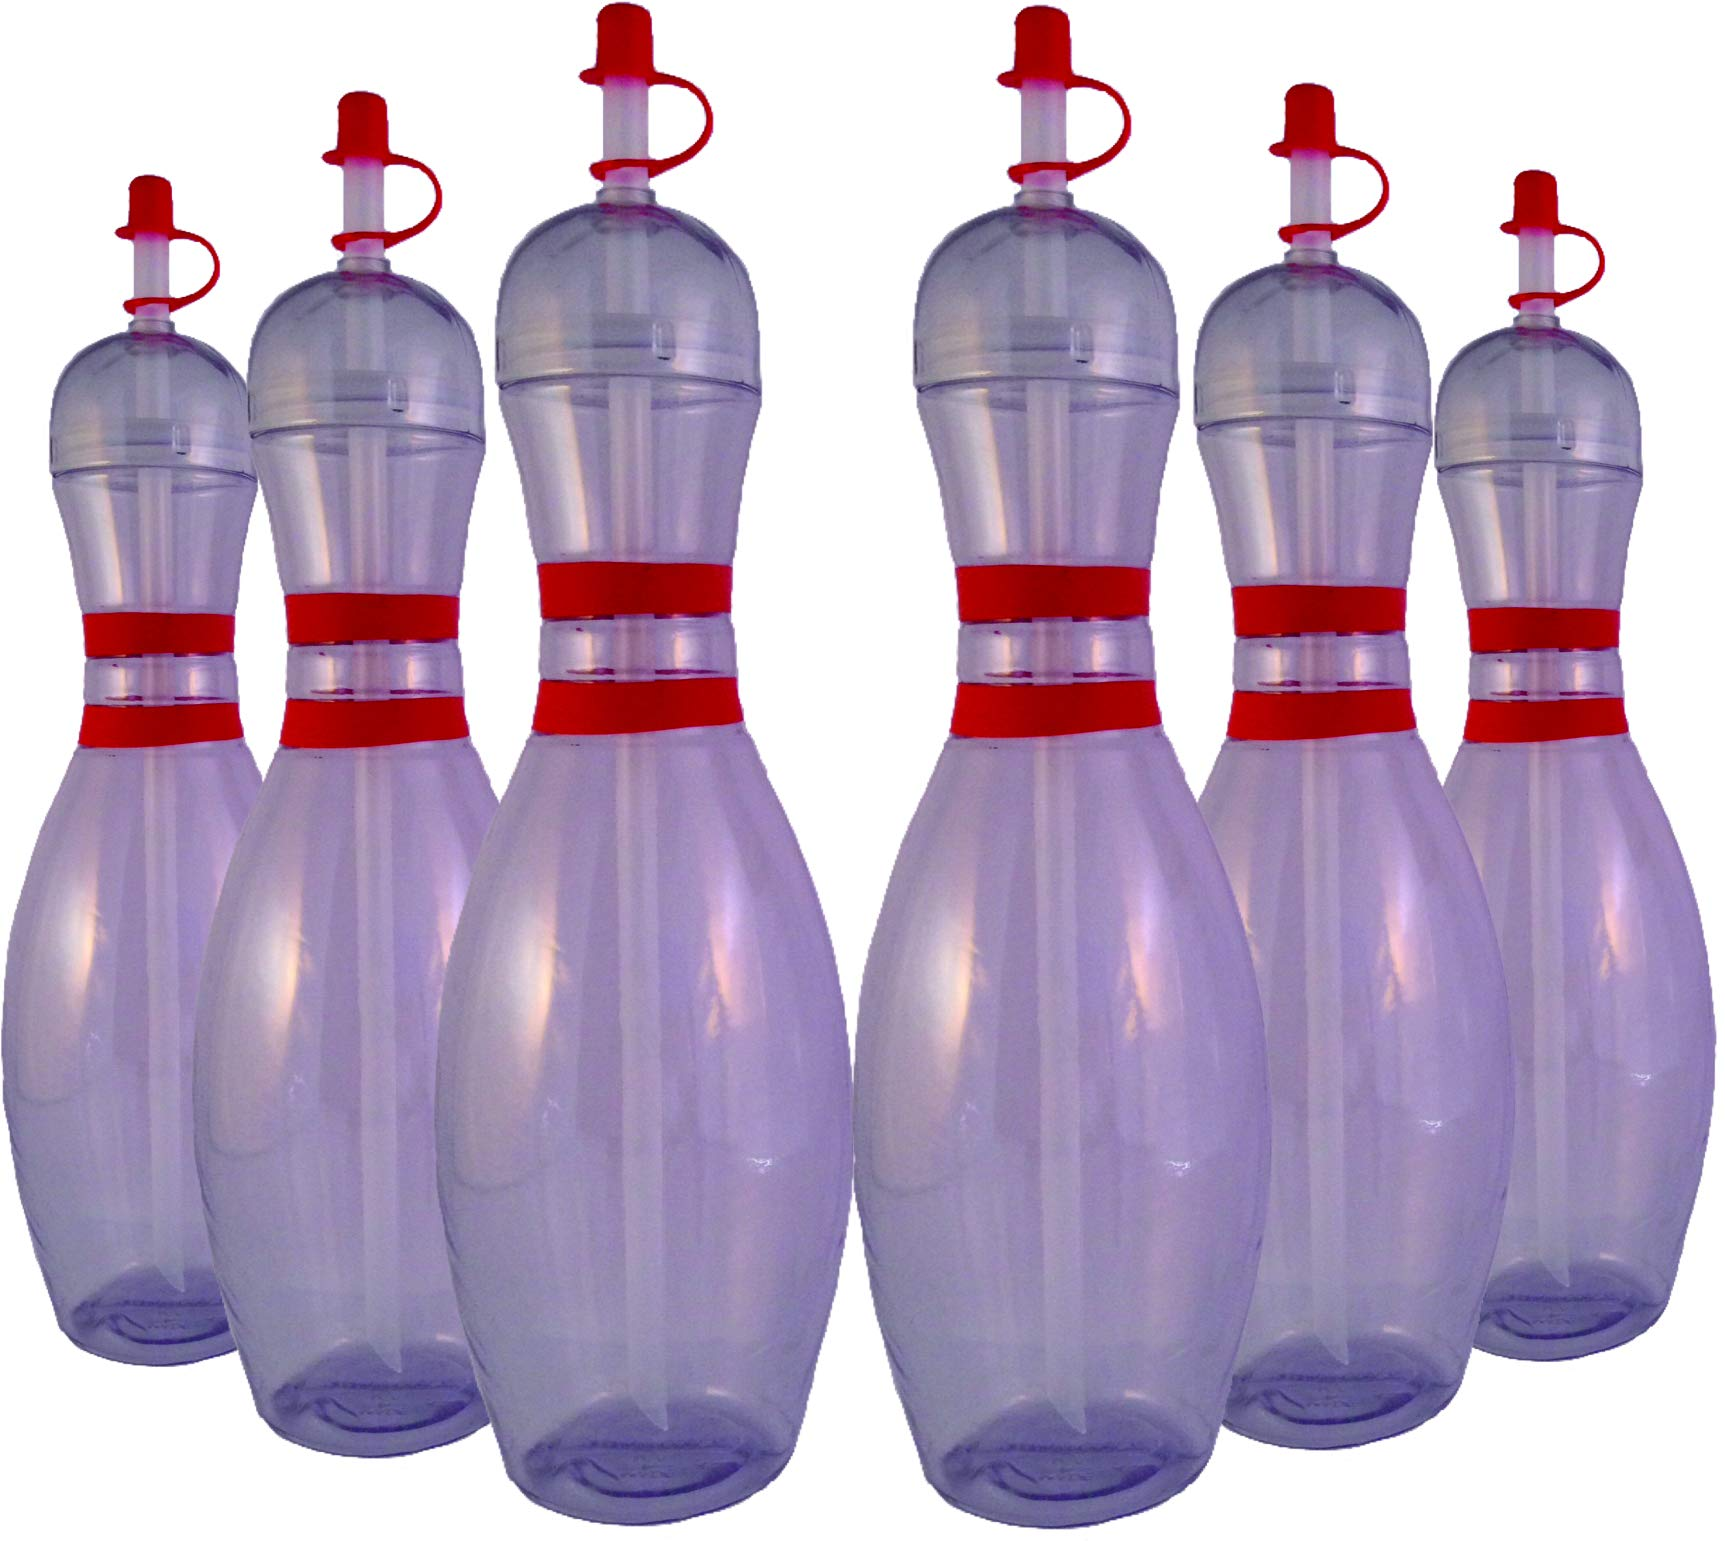 Large Bowling Pin Water Bottles Clear - 6 Pack by Sierra Novelty Bowling Stuff